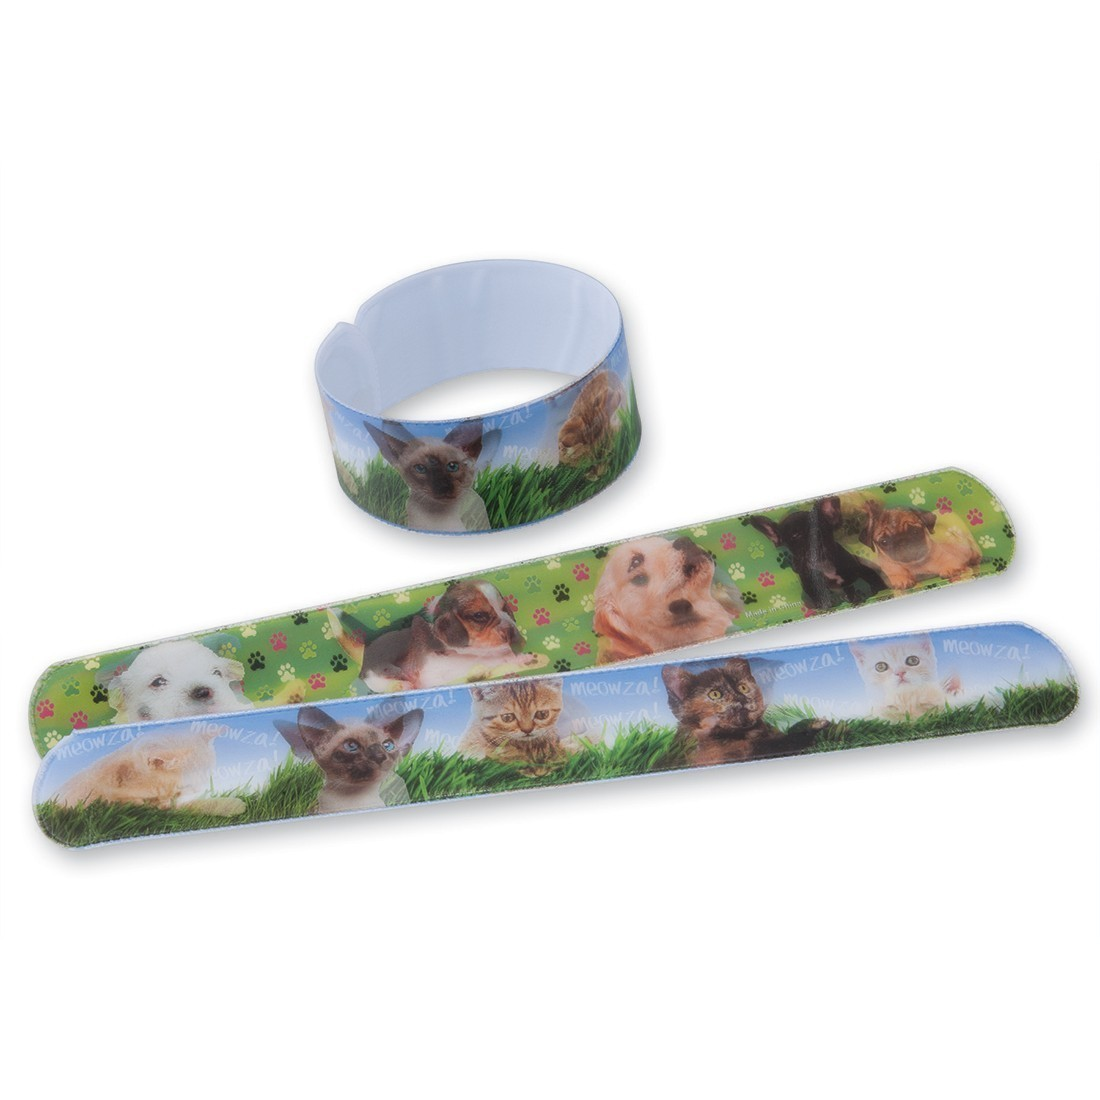 Flicker Slap Bracelets [image]